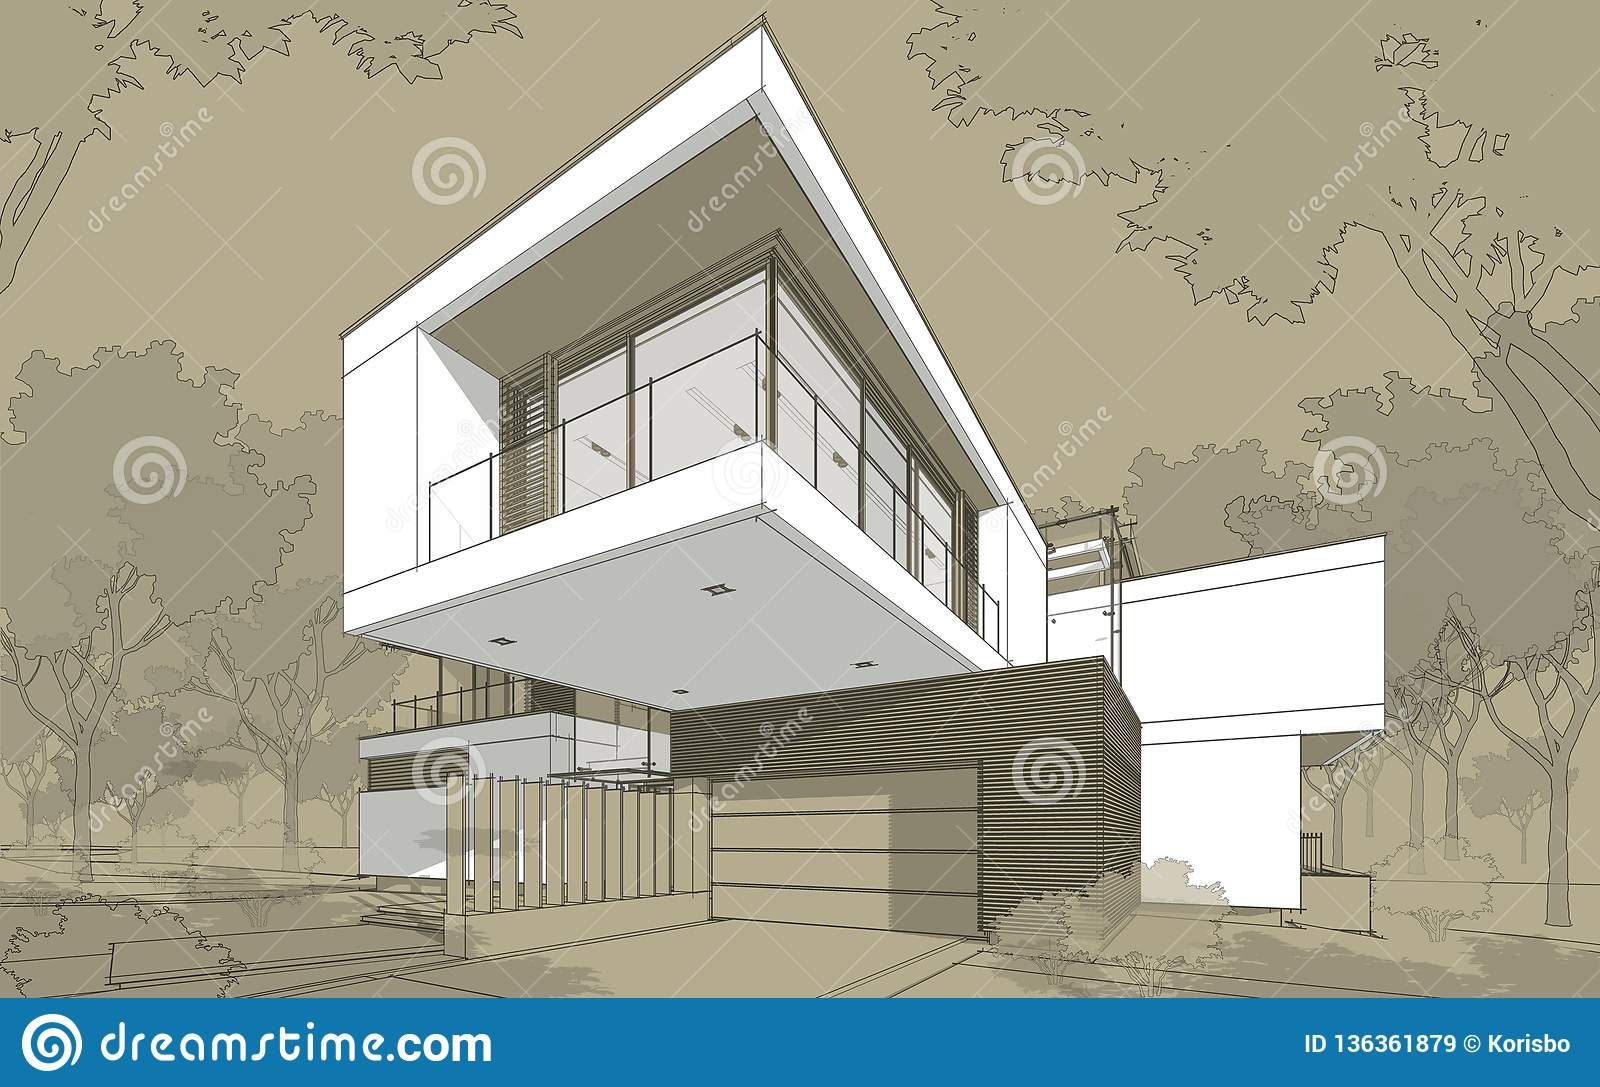 3d rendering sketch of modern cozy house with garage for sale or rent black line sketch with white spot and hand drawing entourage on craft background